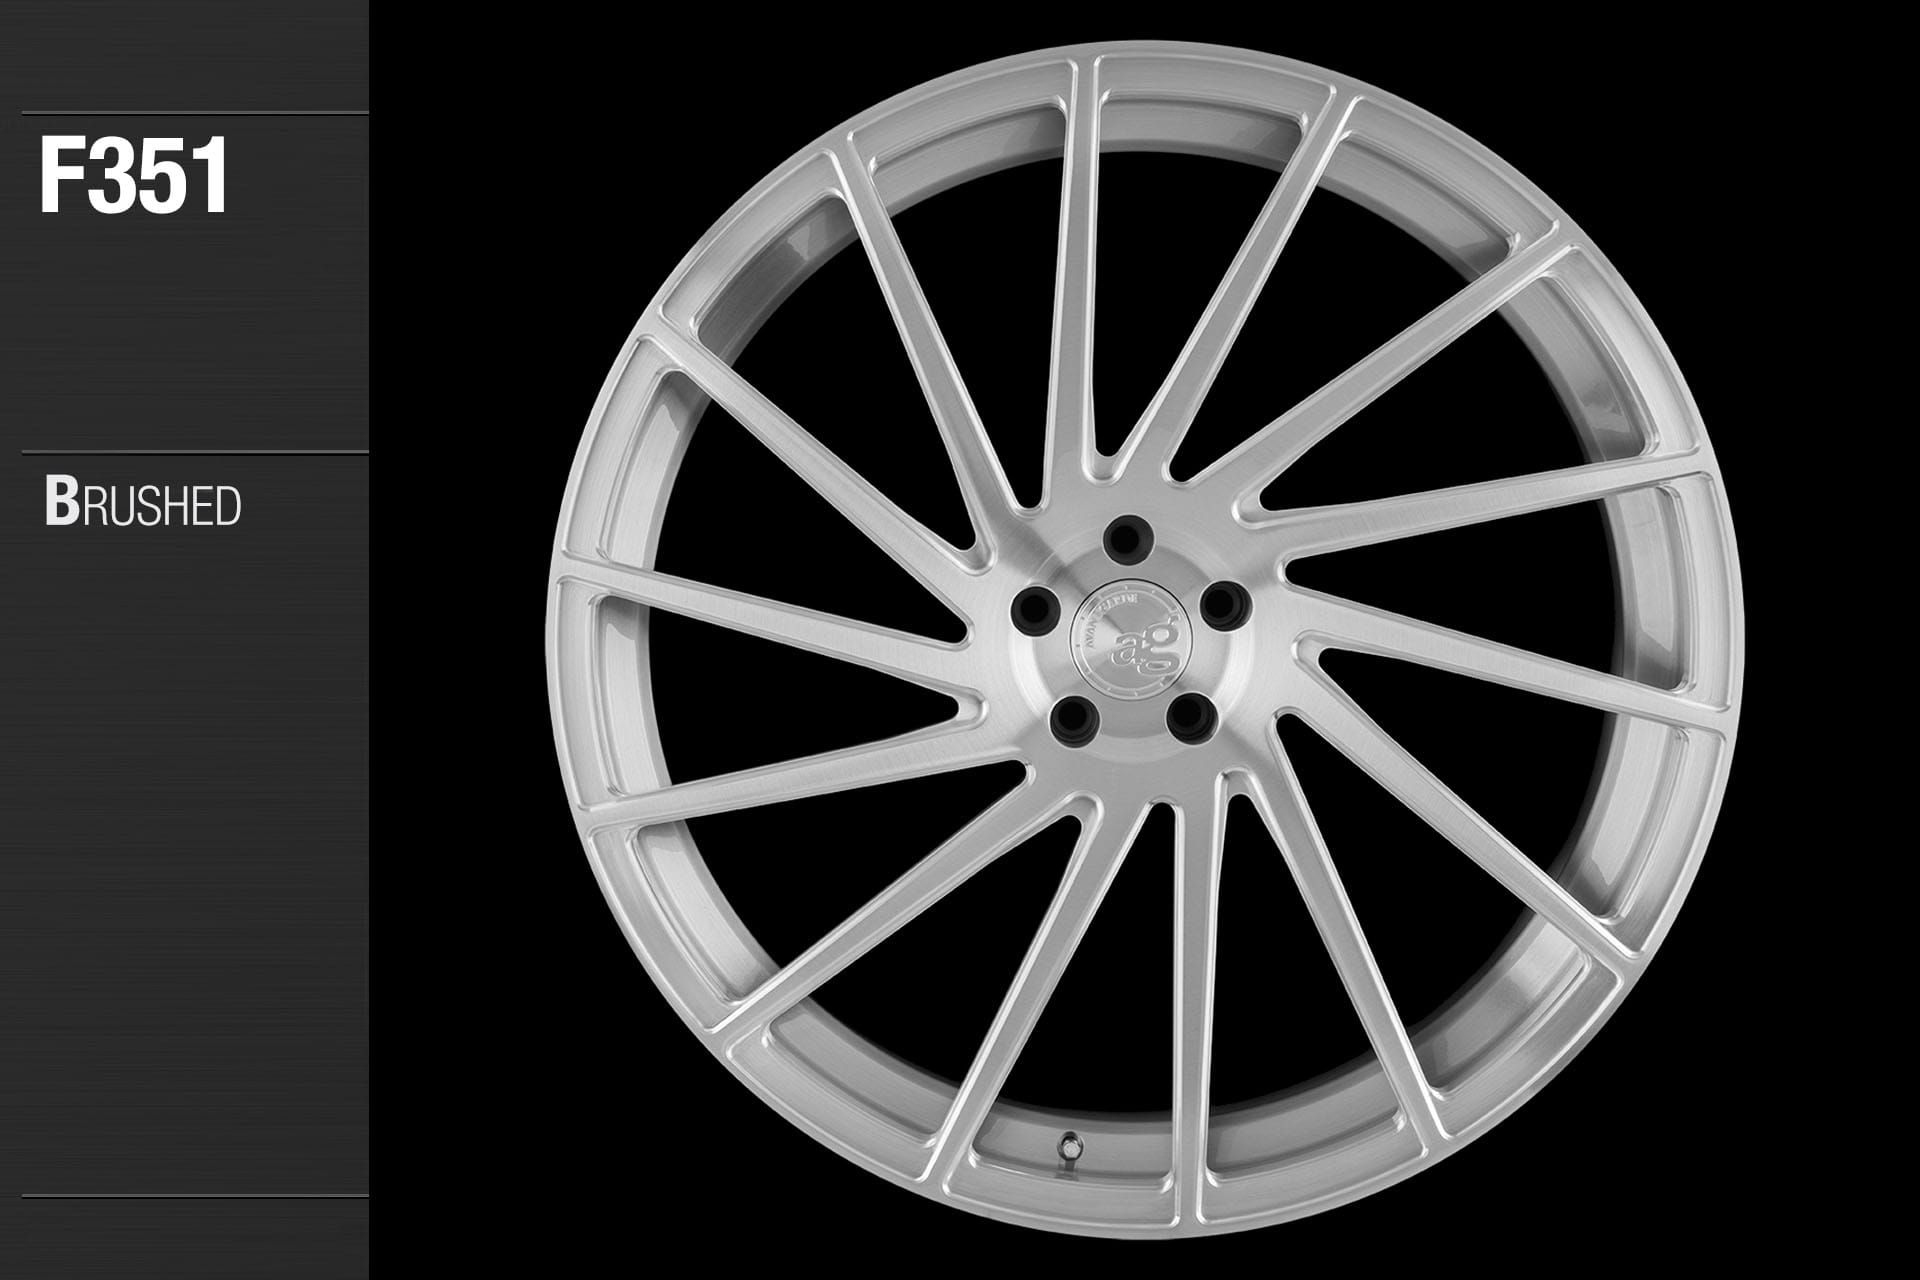 avant-garde-ag-wheels-f351-brushed-1-min